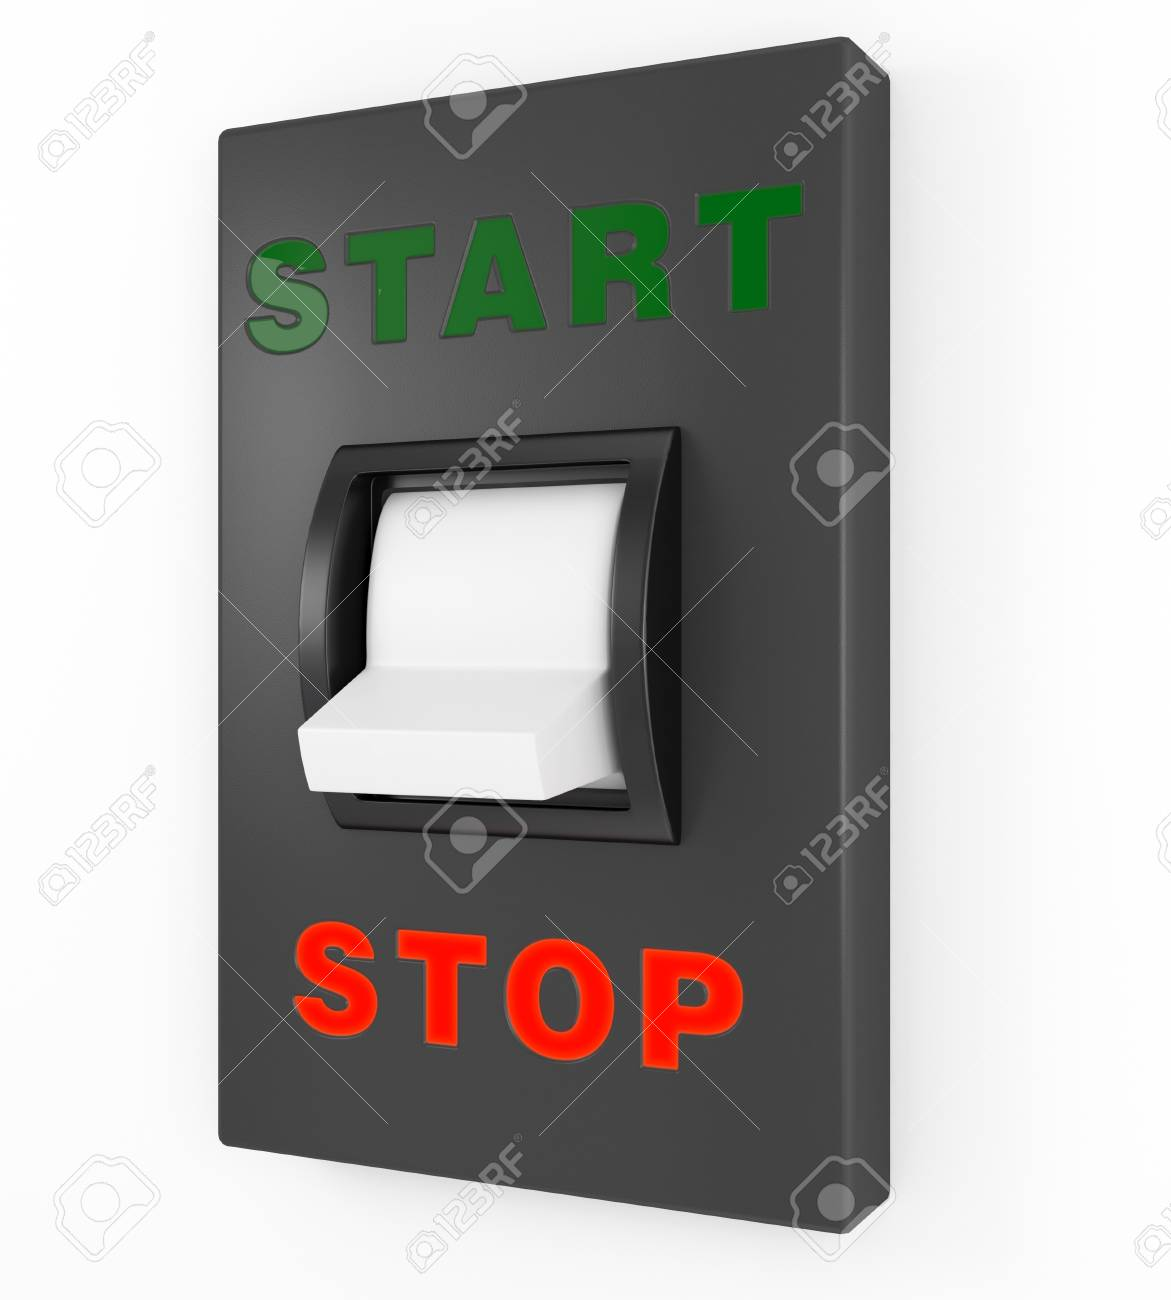 Toggle switch in Stop position Stock Photo - 15139132